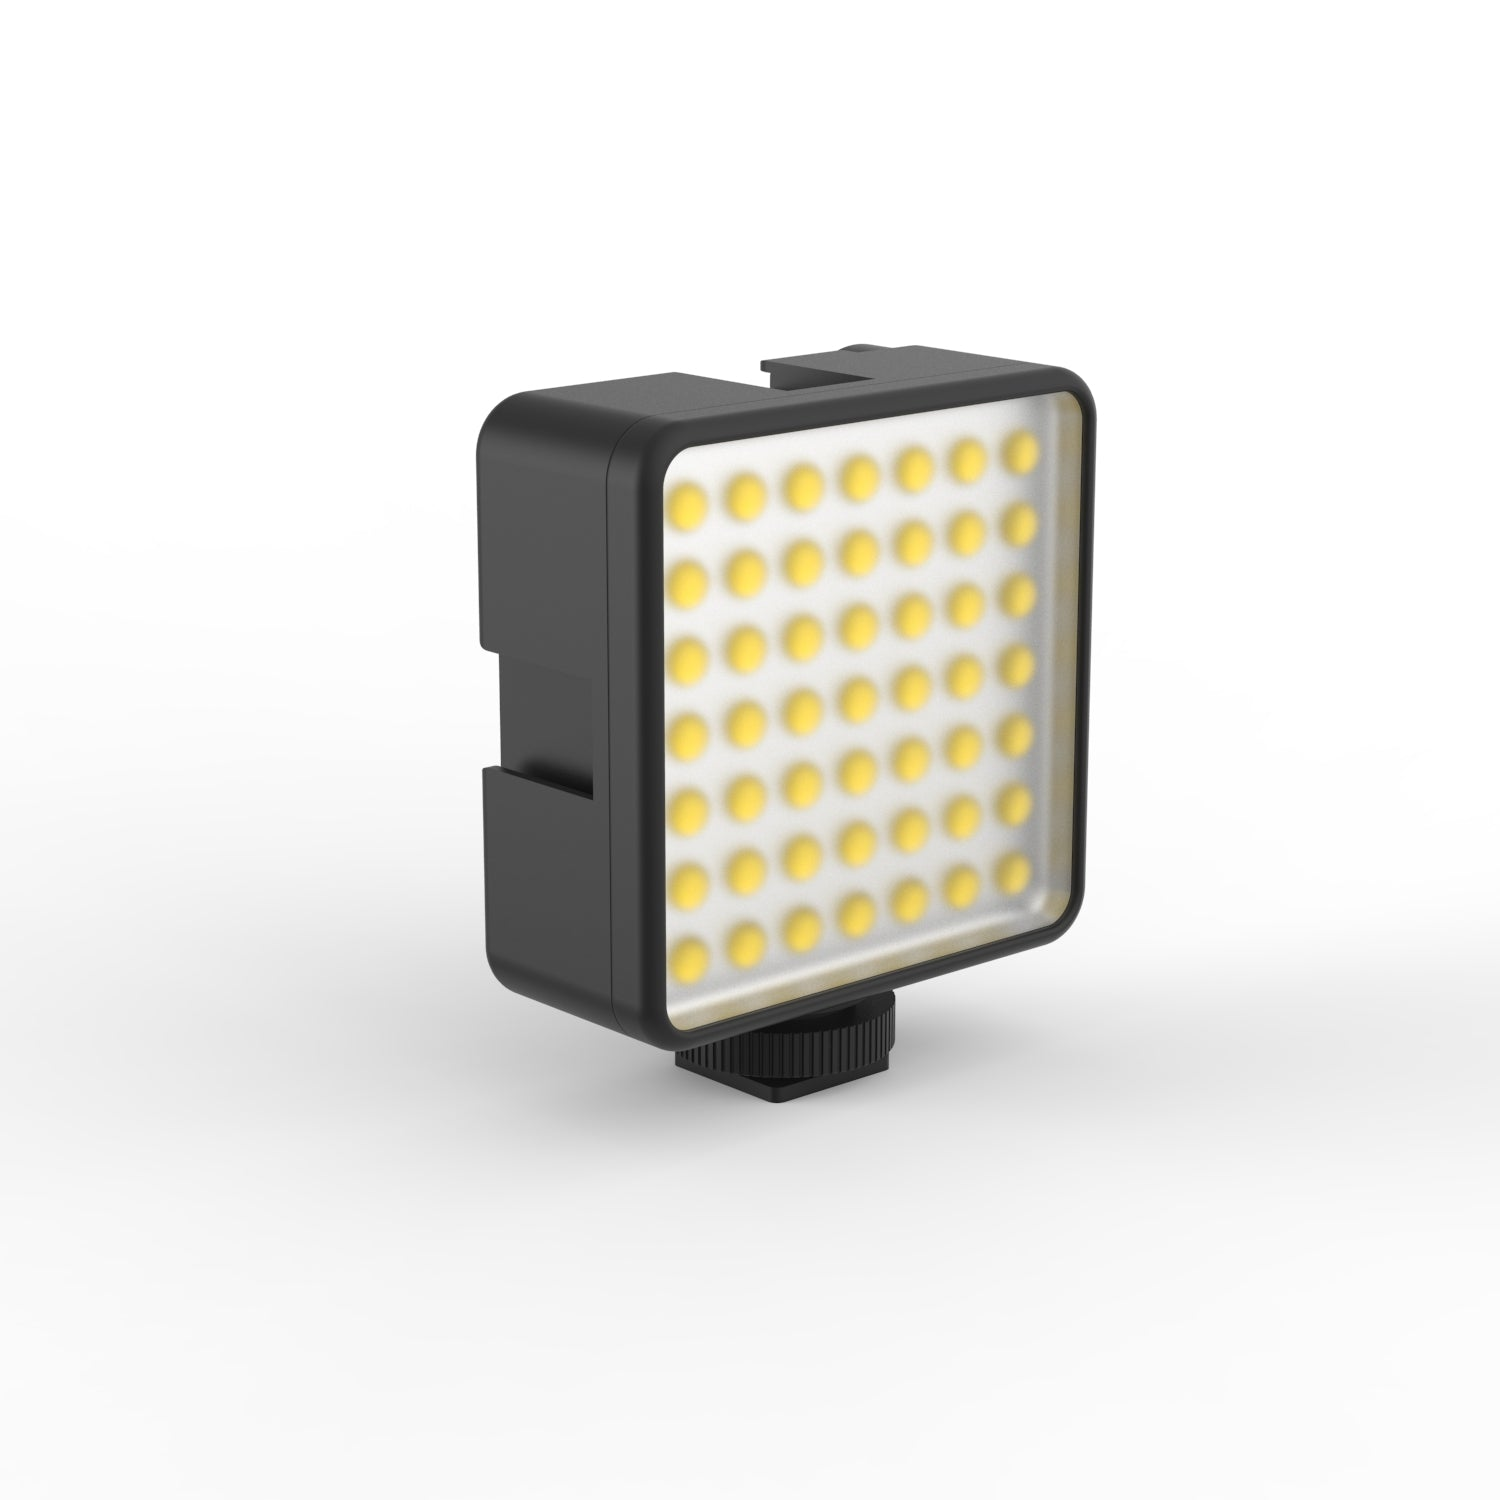 Grifiti Nootle LED Video Light - Grifiti